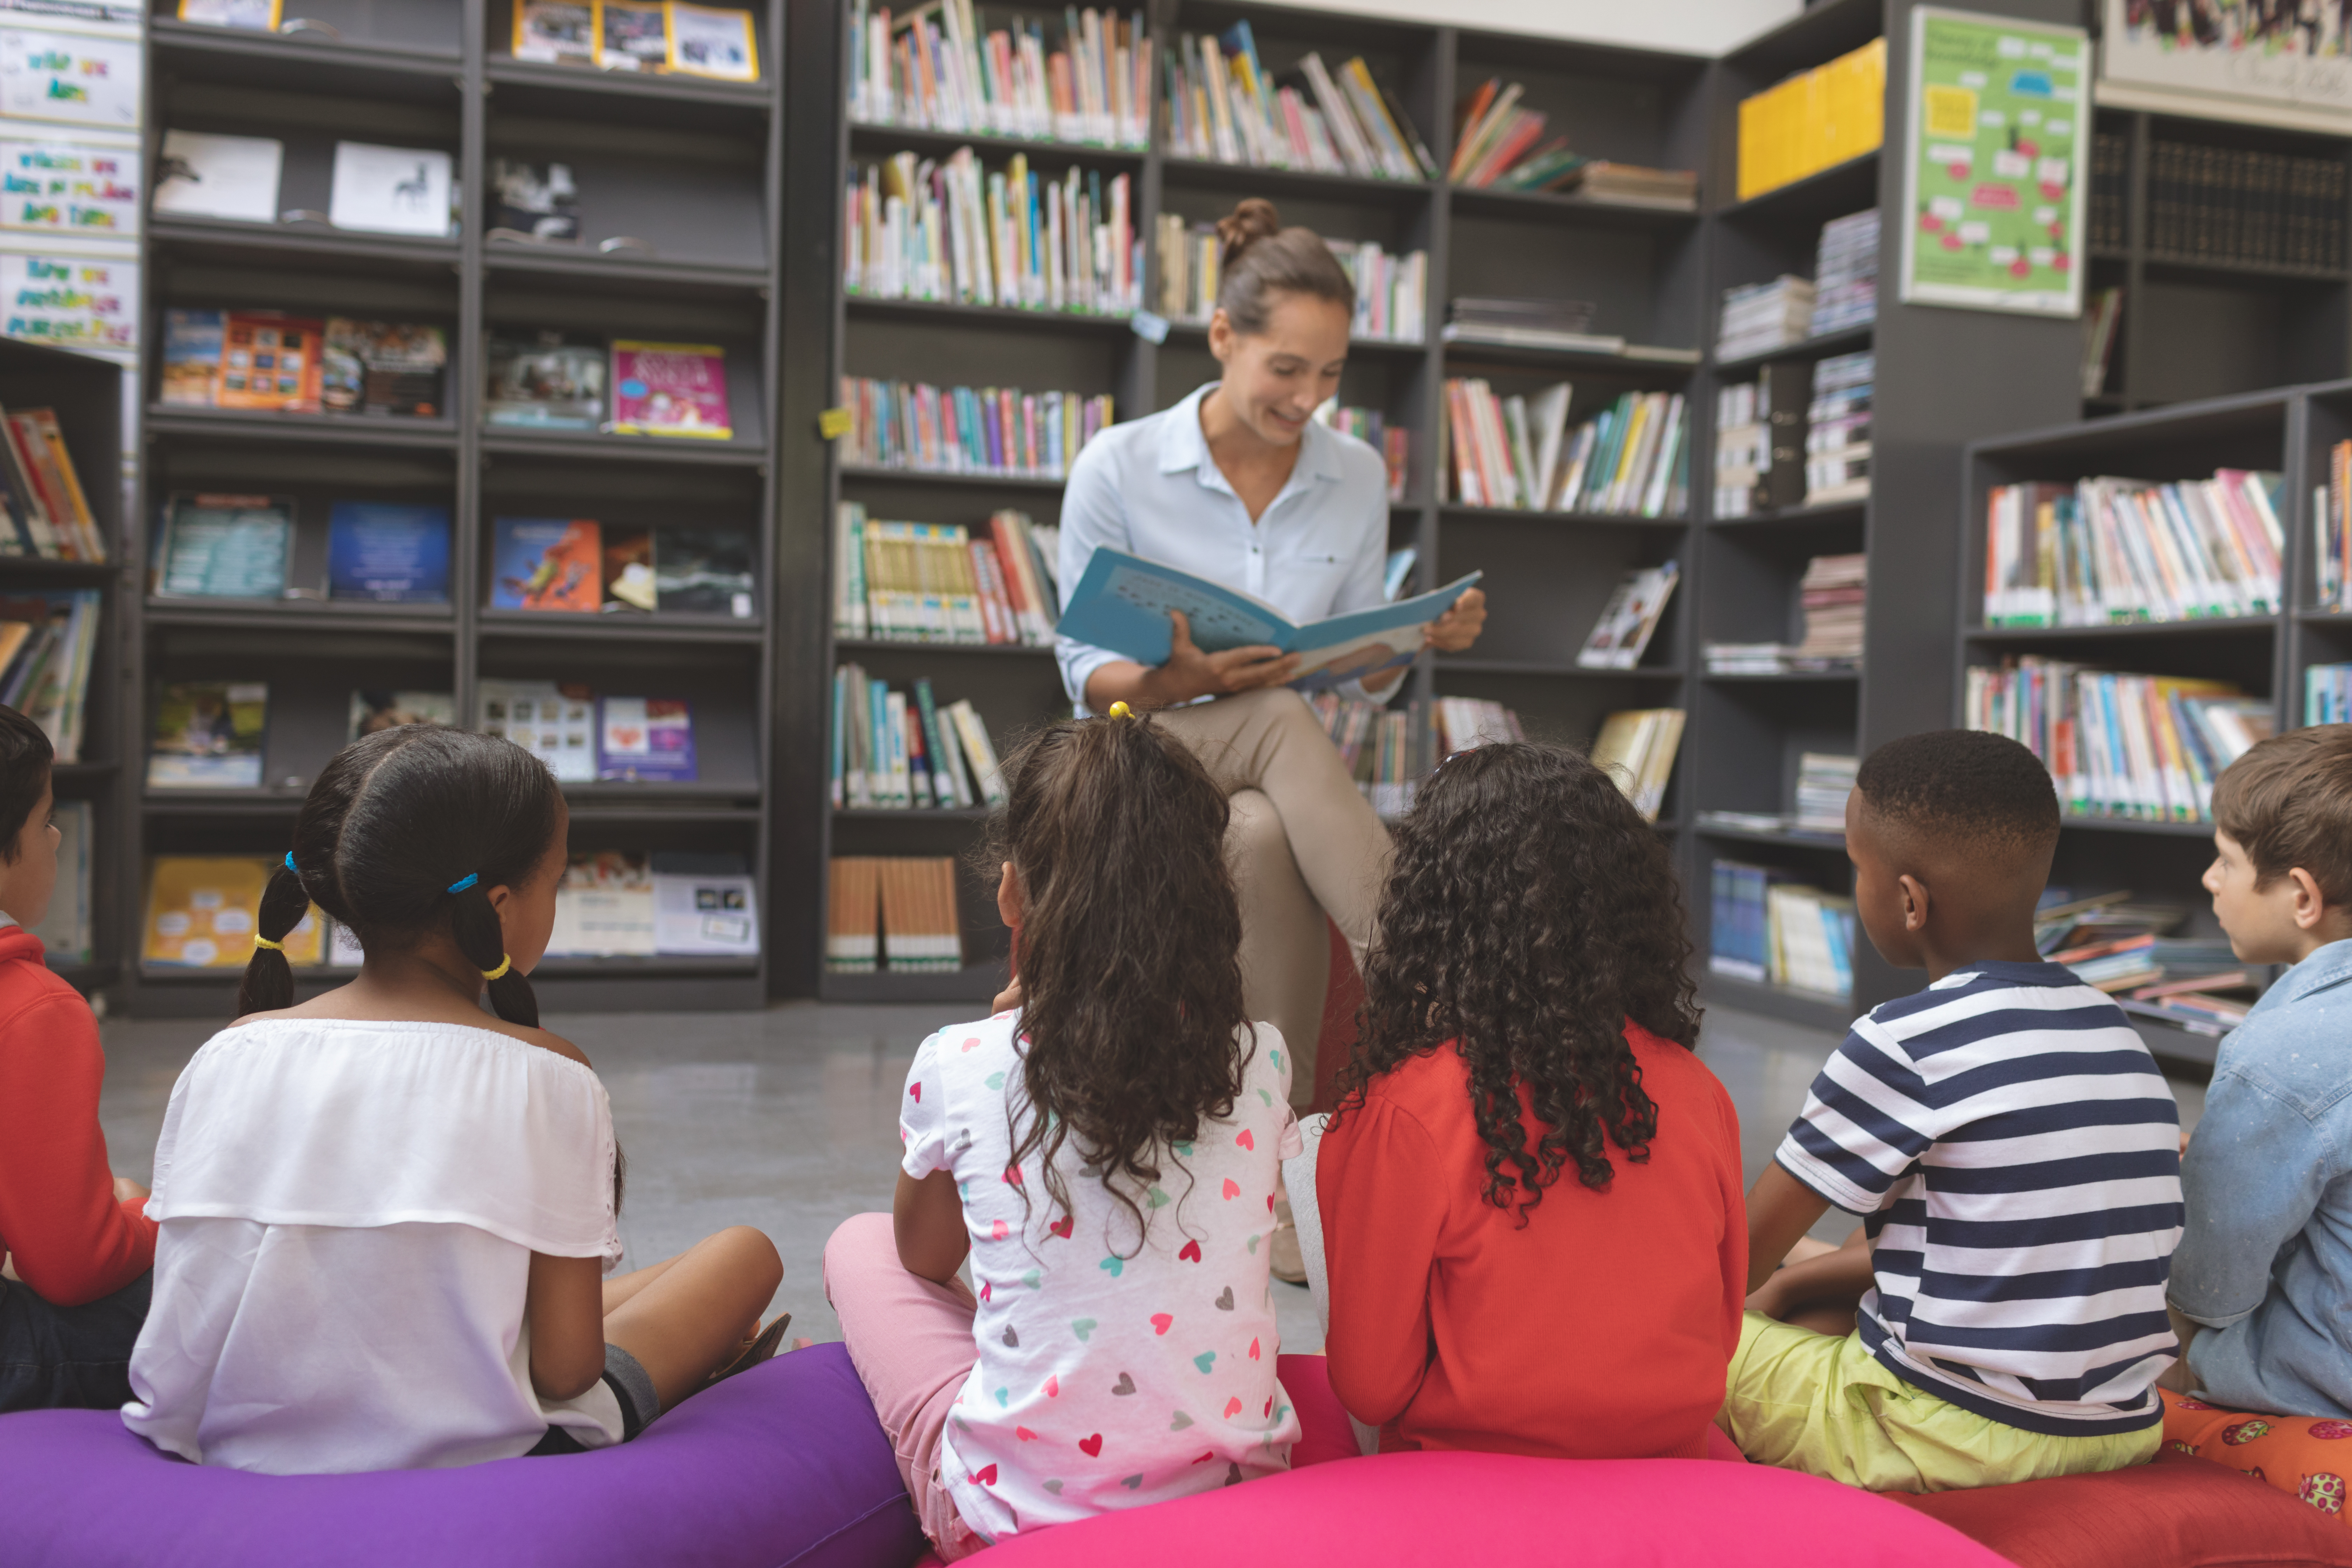 Front view of a teacher reading a story in a library to school kids sitting over big colored cushions in foreground